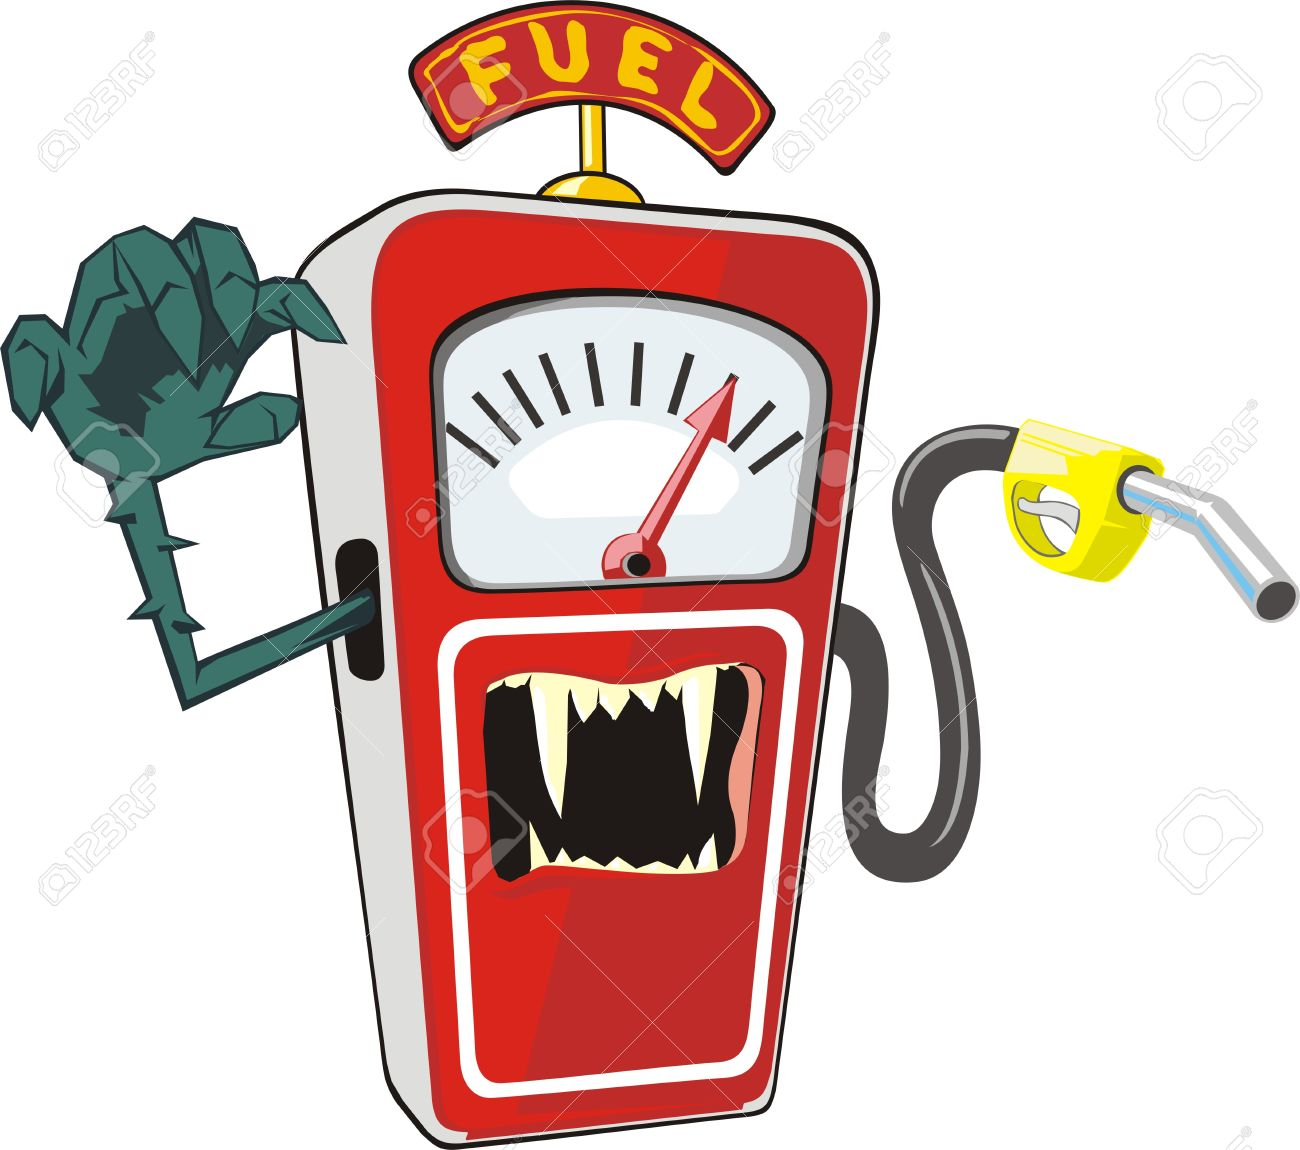 Truck stop gas price sign clipart clip free stock Cartoon Gas Station Clipart | Free download best Cartoon Gas ... clip free stock